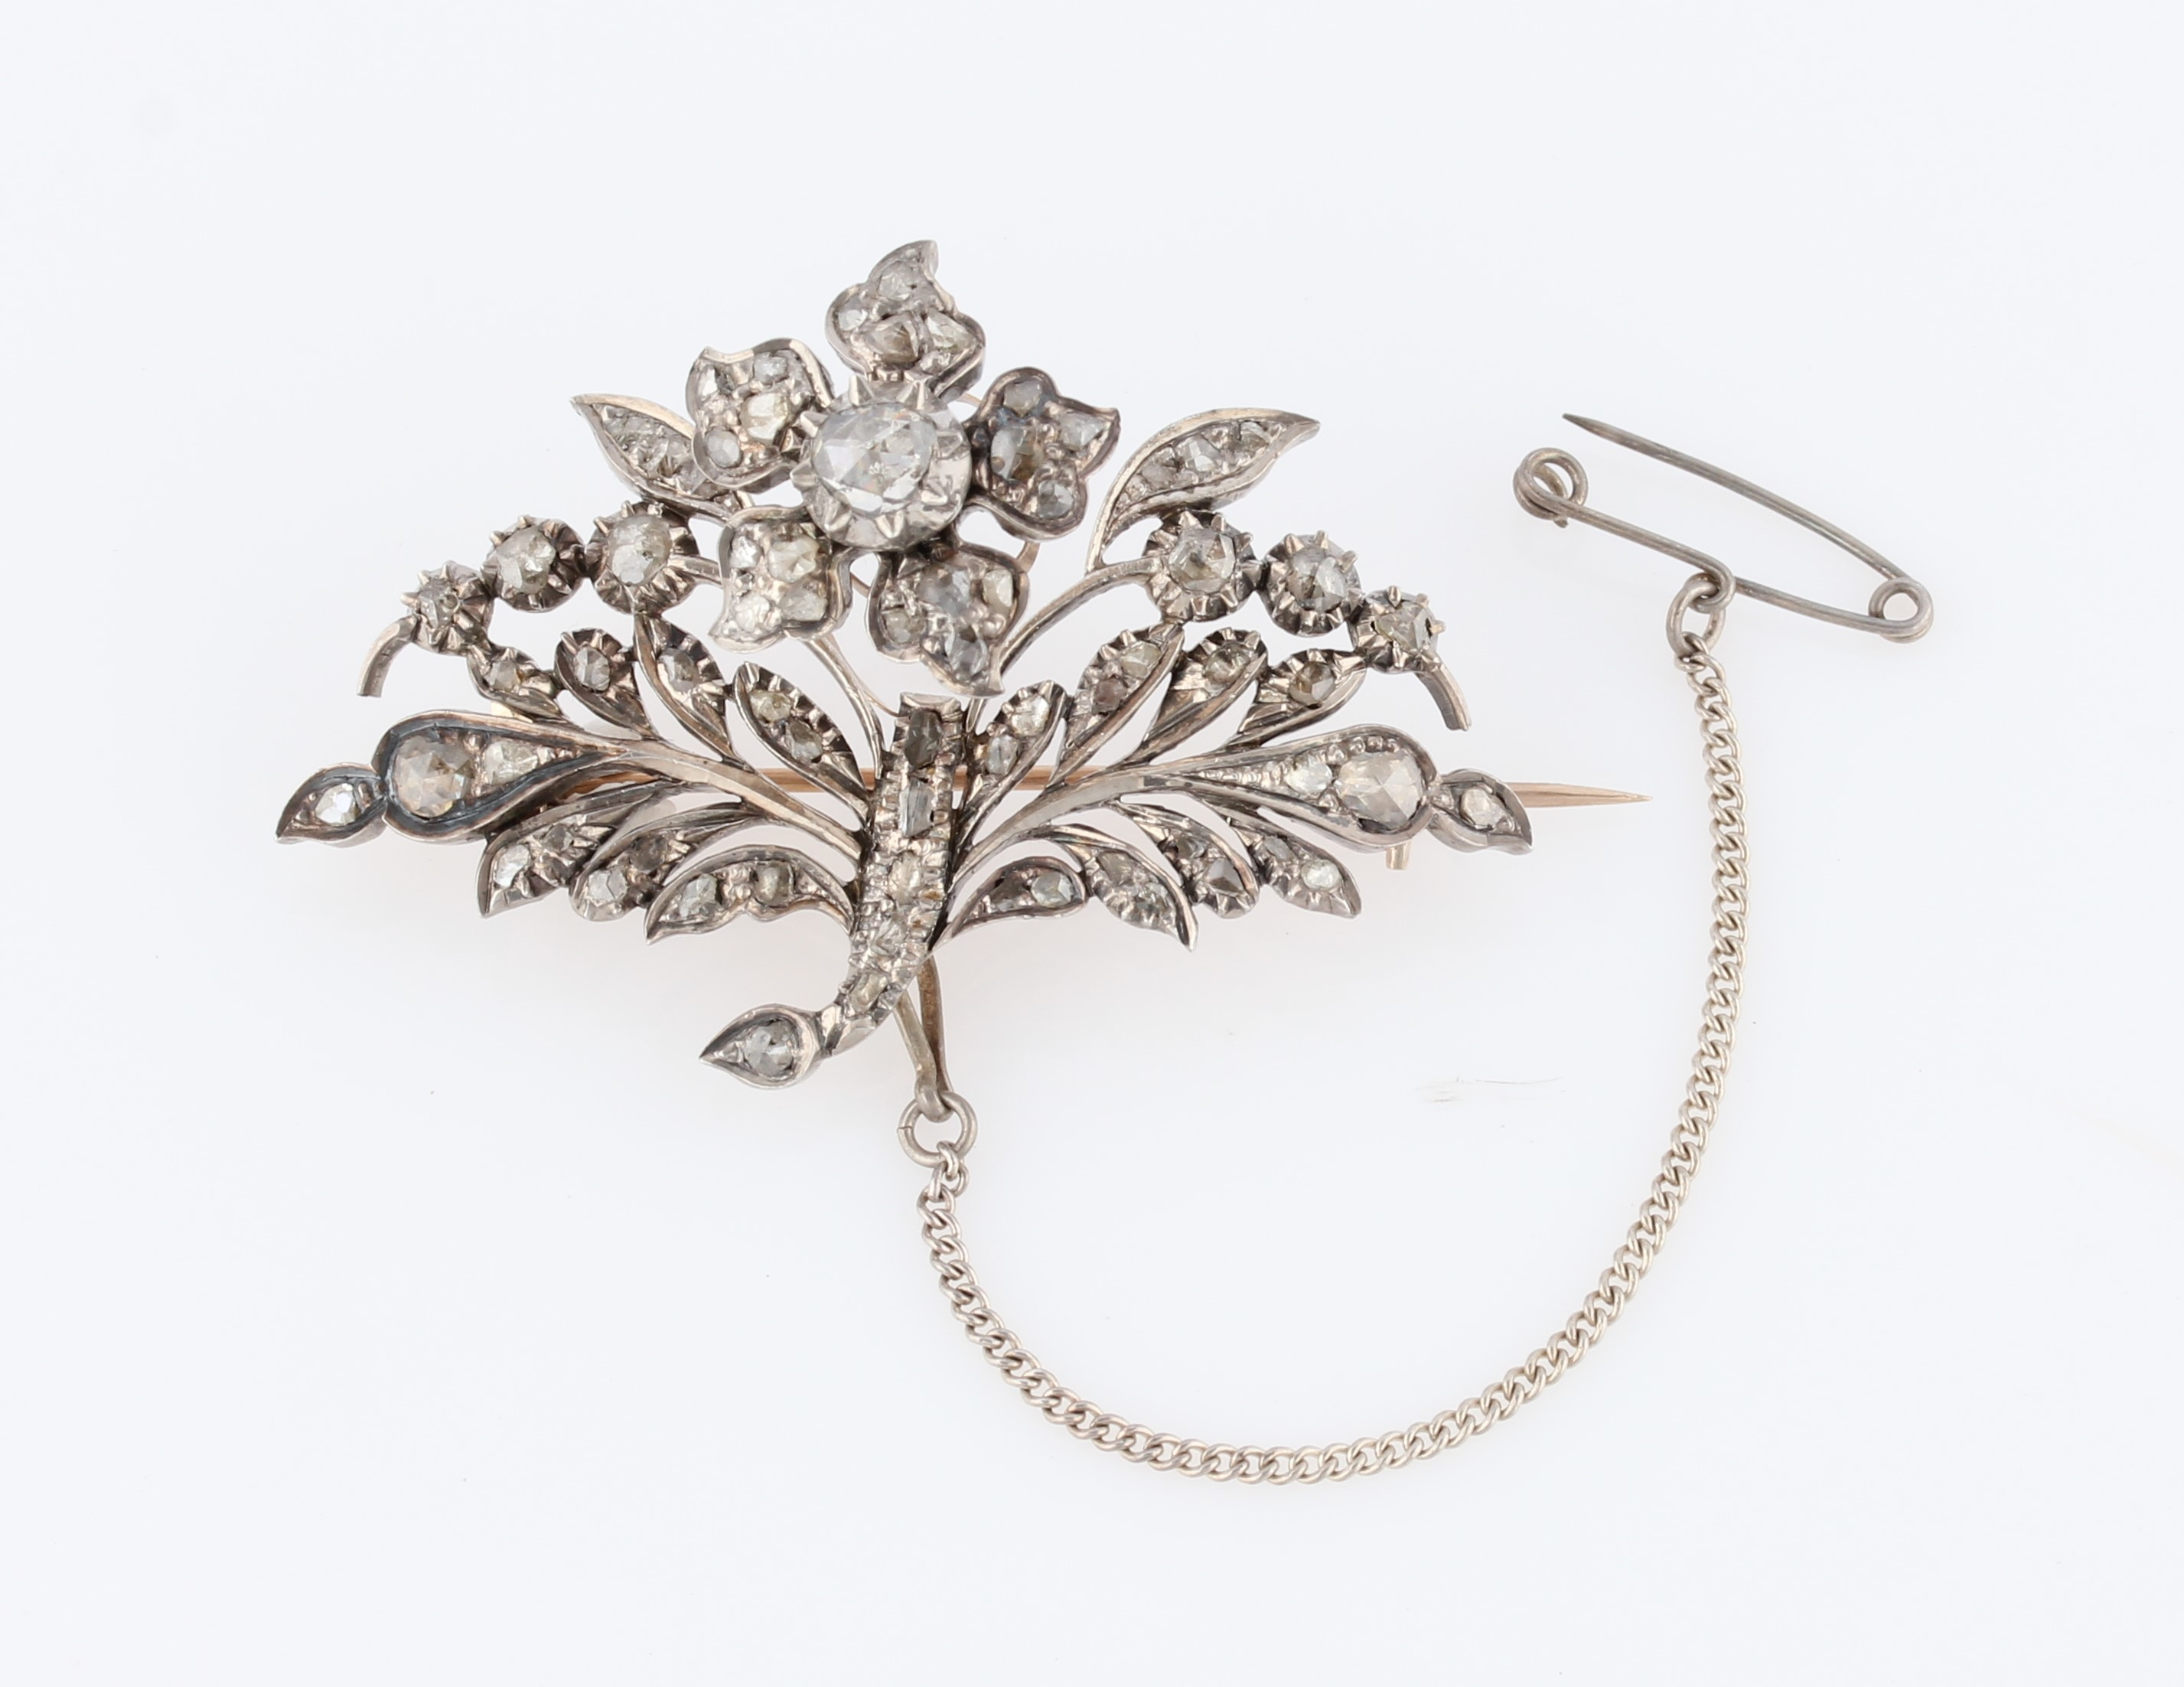 Lot 26 - An 'en tremblent' diamond set brooch, the floral and foliage design set with variously size rose cut